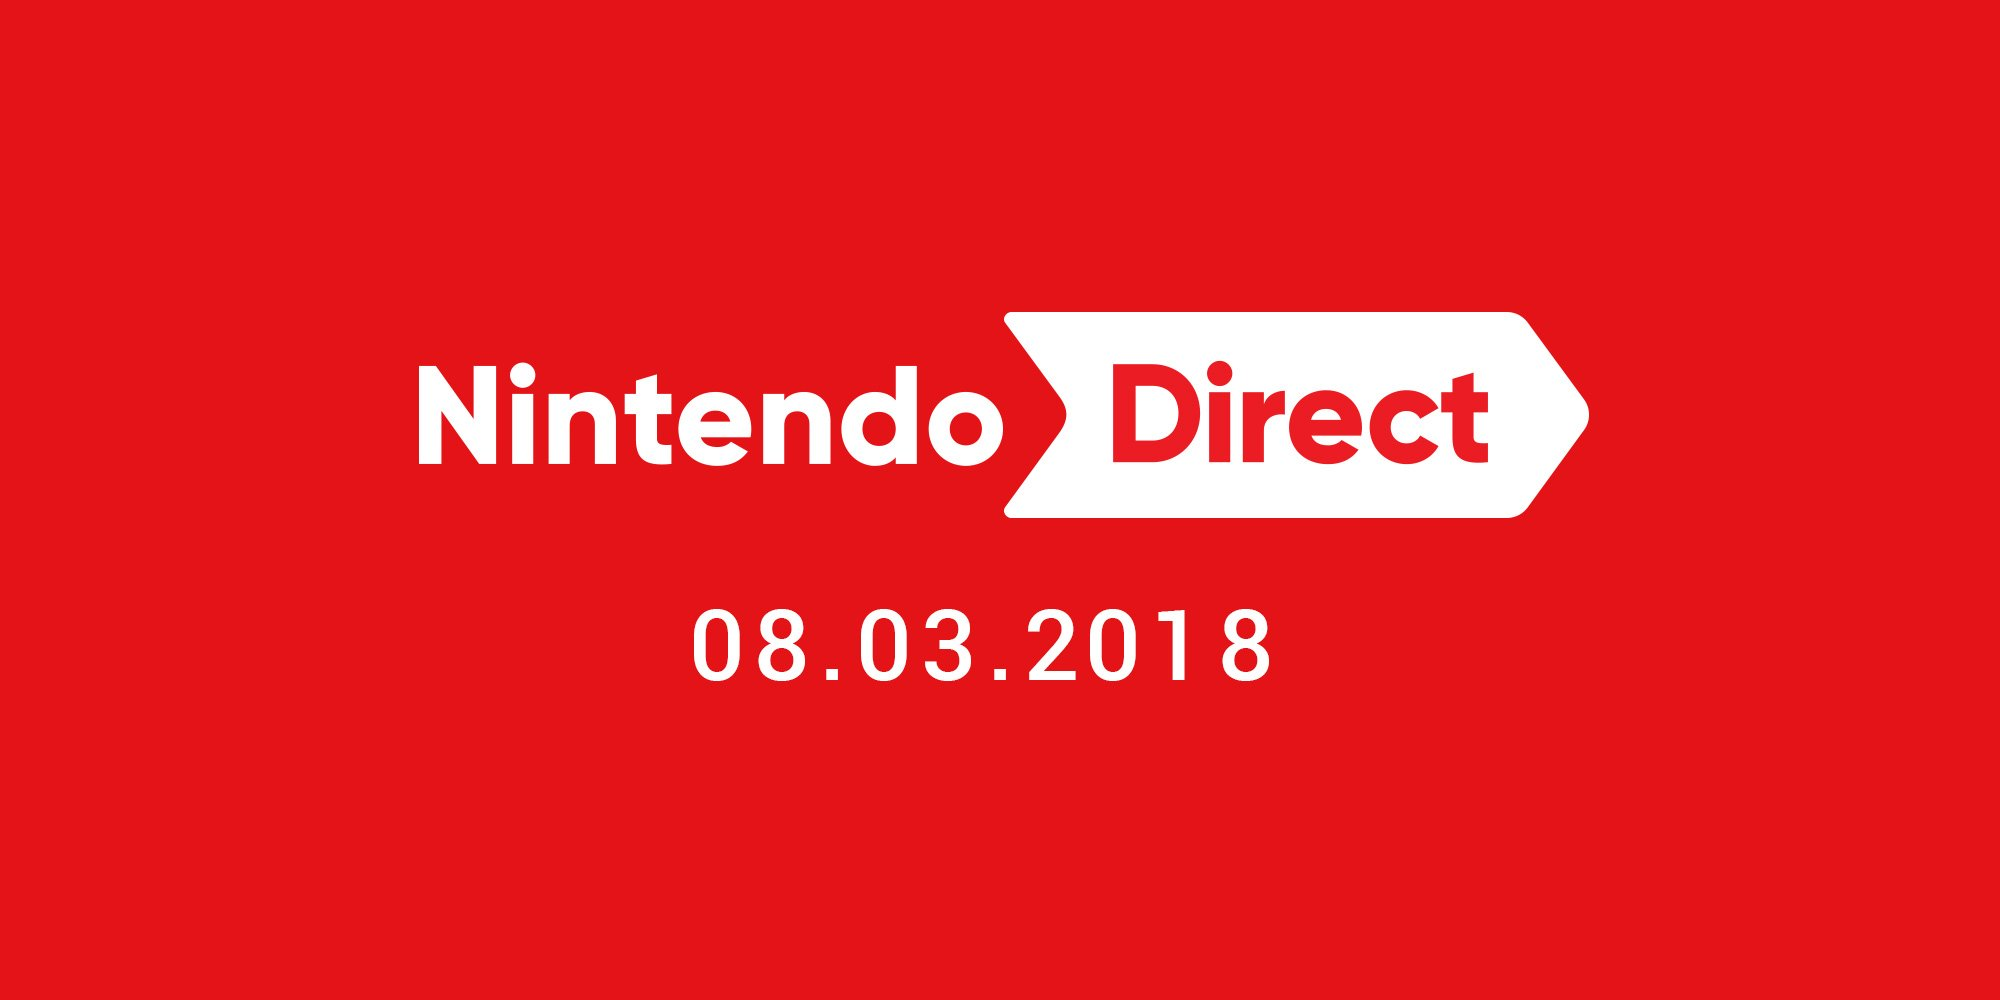 A wild new Nintendo Direct appears, live tomorrow at 10PM UK Time